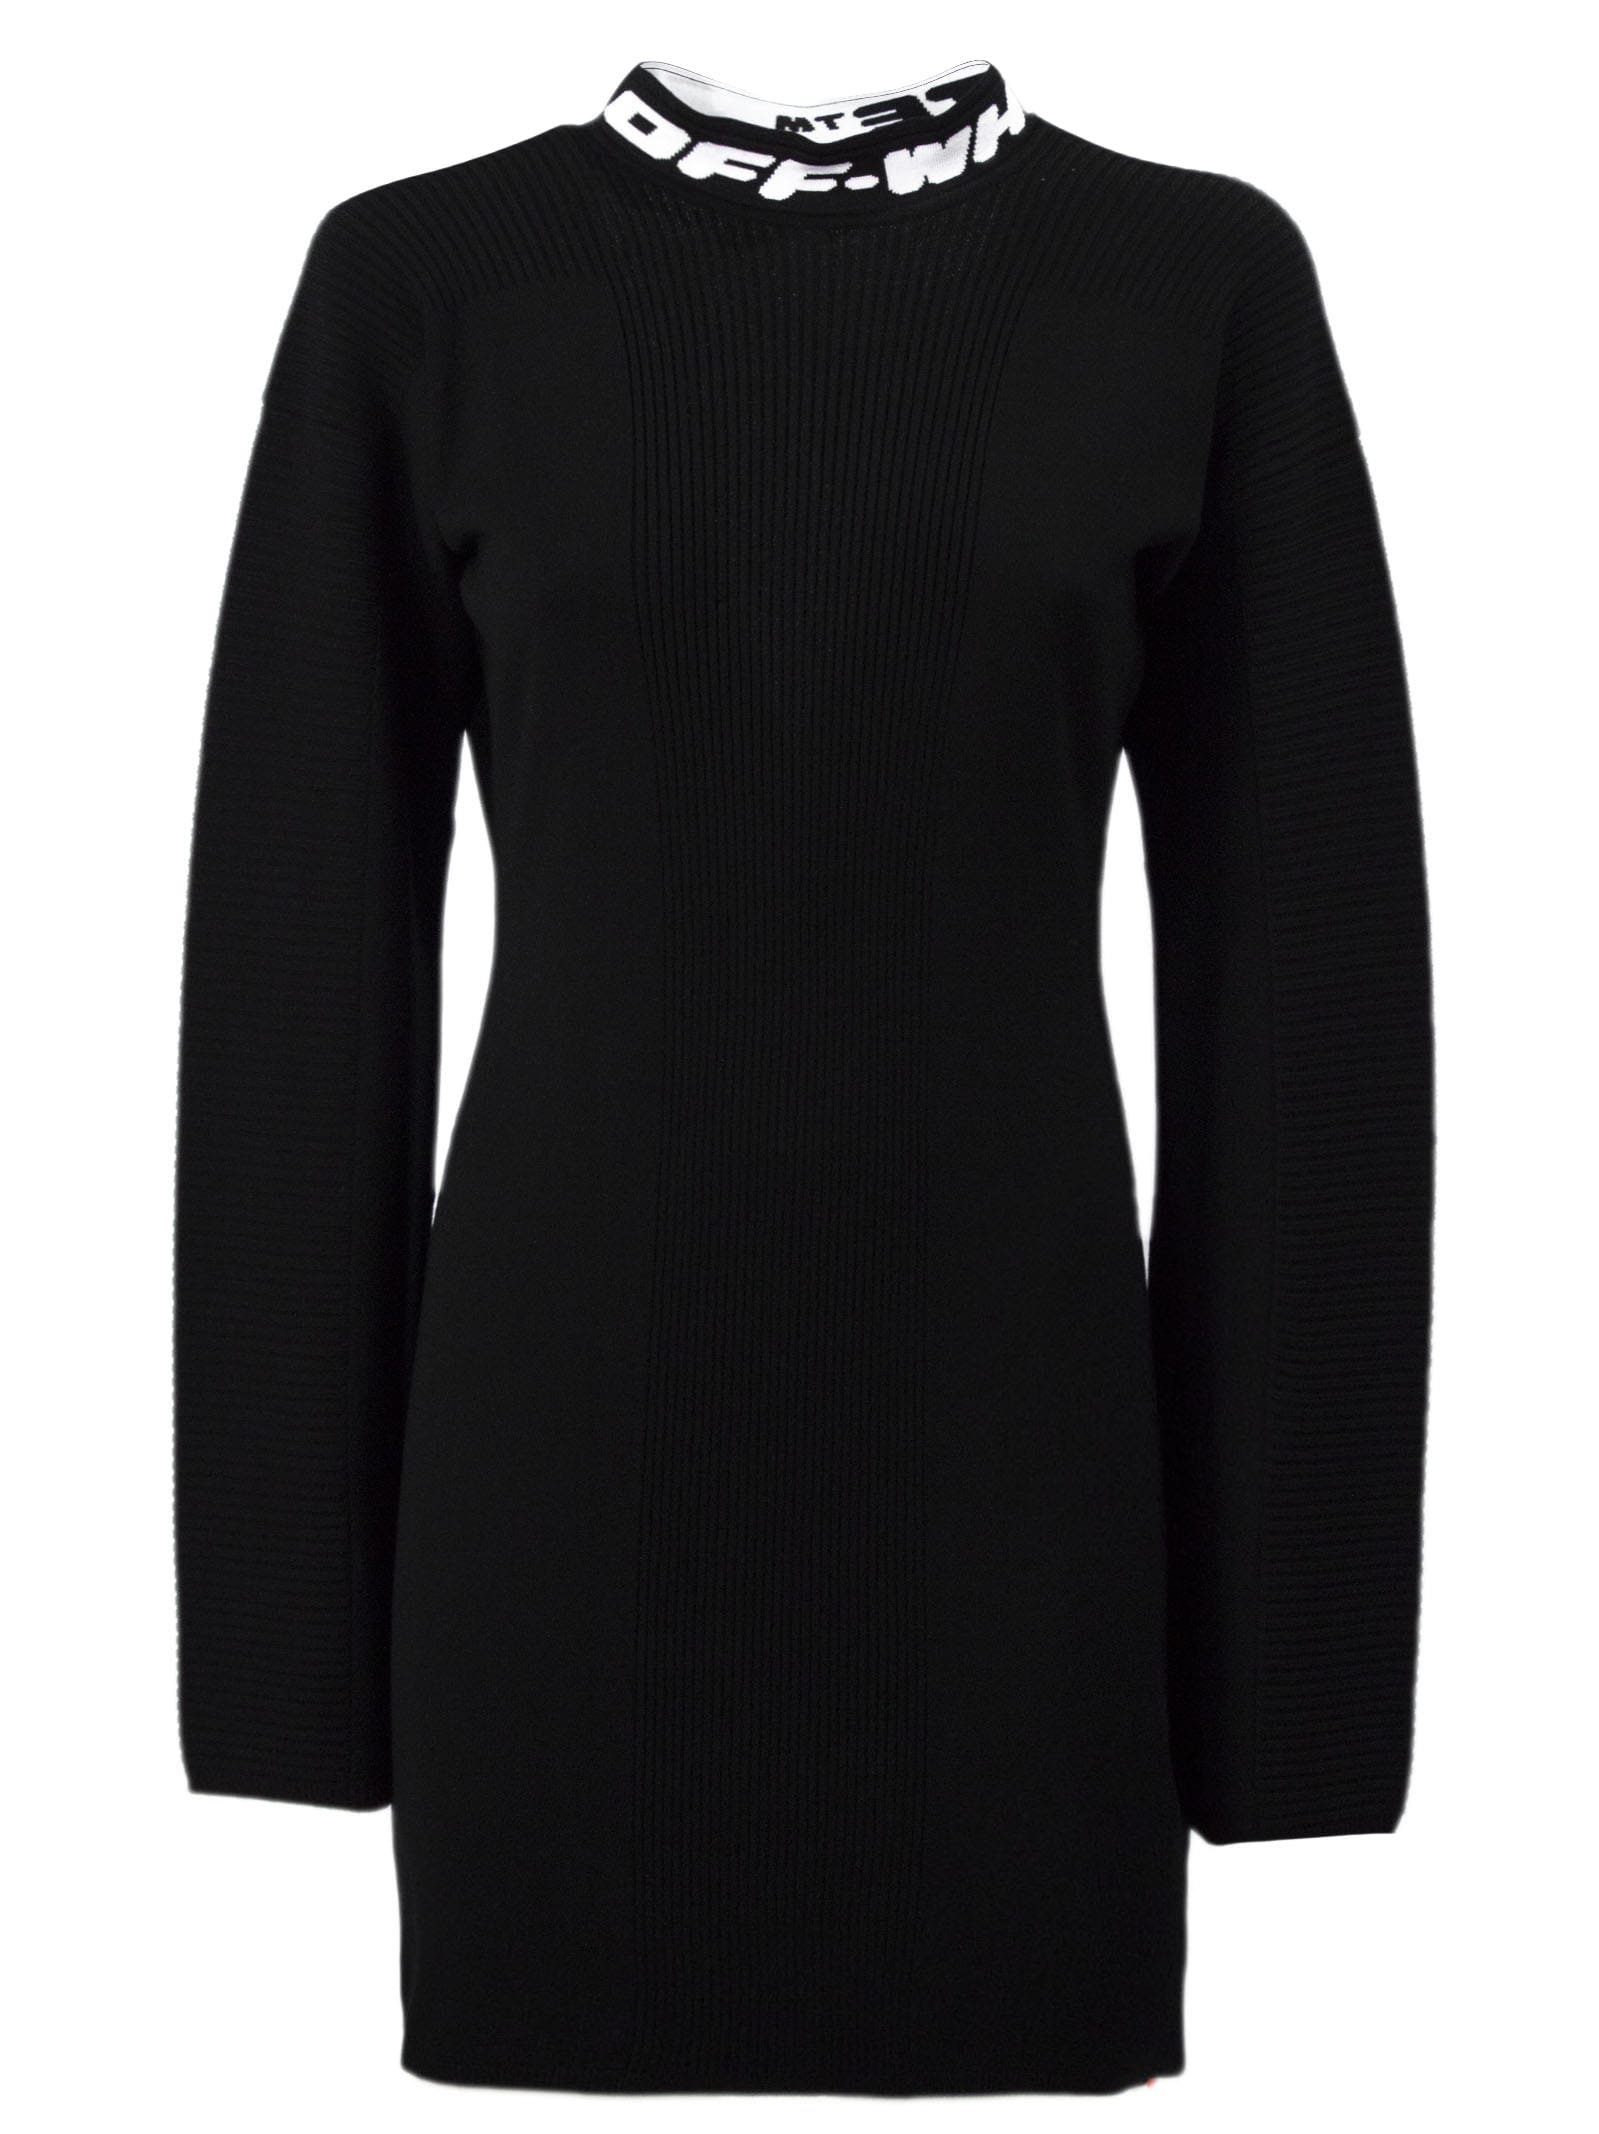 Buy Off-White Black Knit Mini Dress online, shop Off-White with free shipping